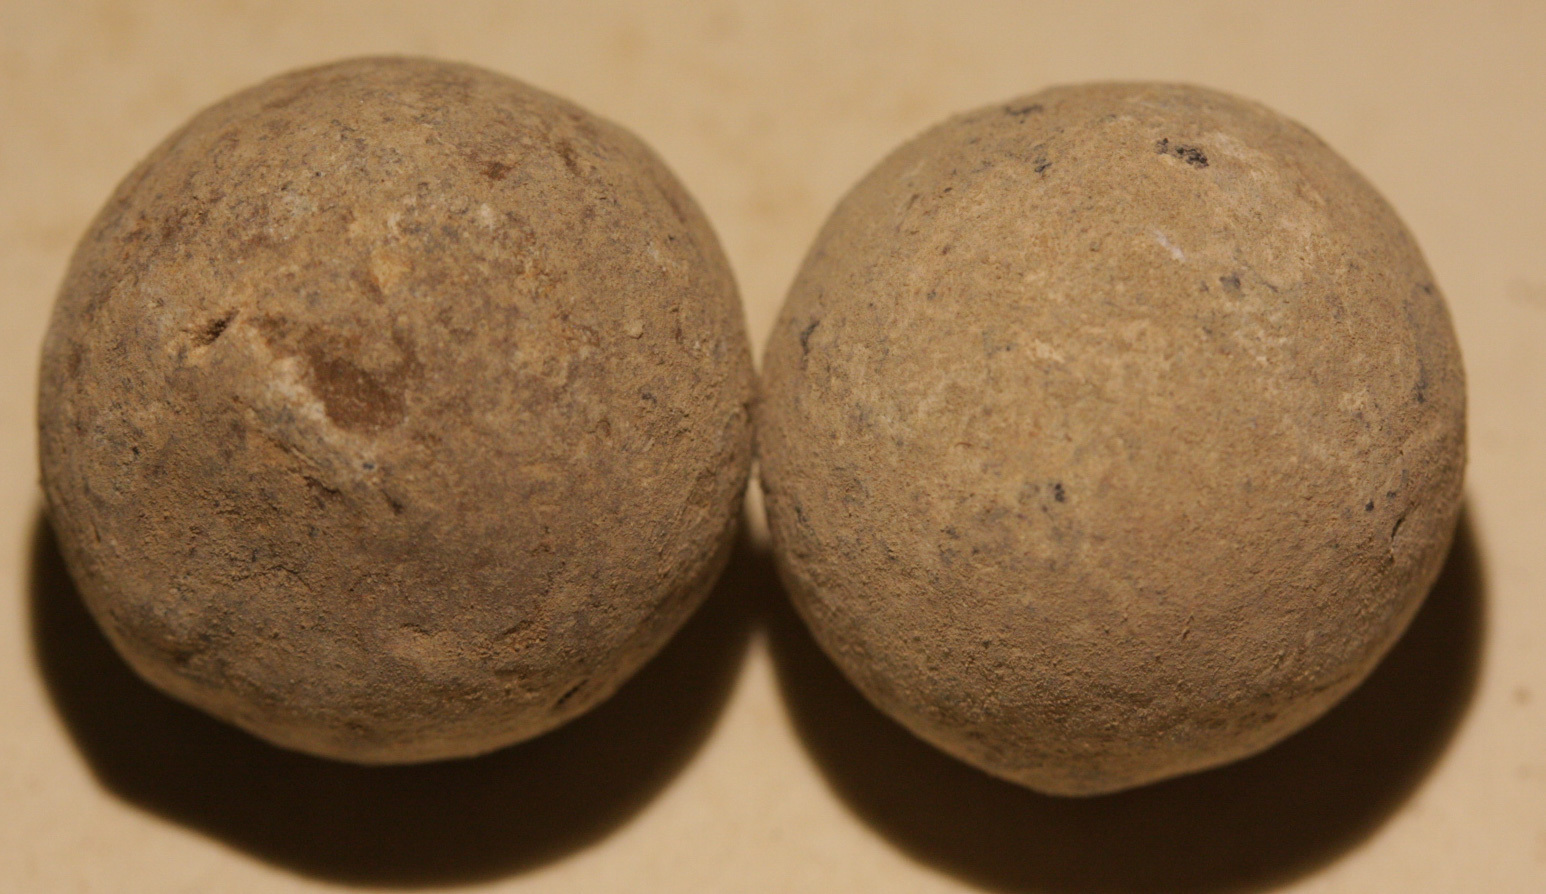 JUST ADDED ON 11/10 - THE BATTLE OF PORT REPUBLIC / JACKSON'S VALLEY CAMPAIGN - Two .69 Caliber Round Balls WB-PR13